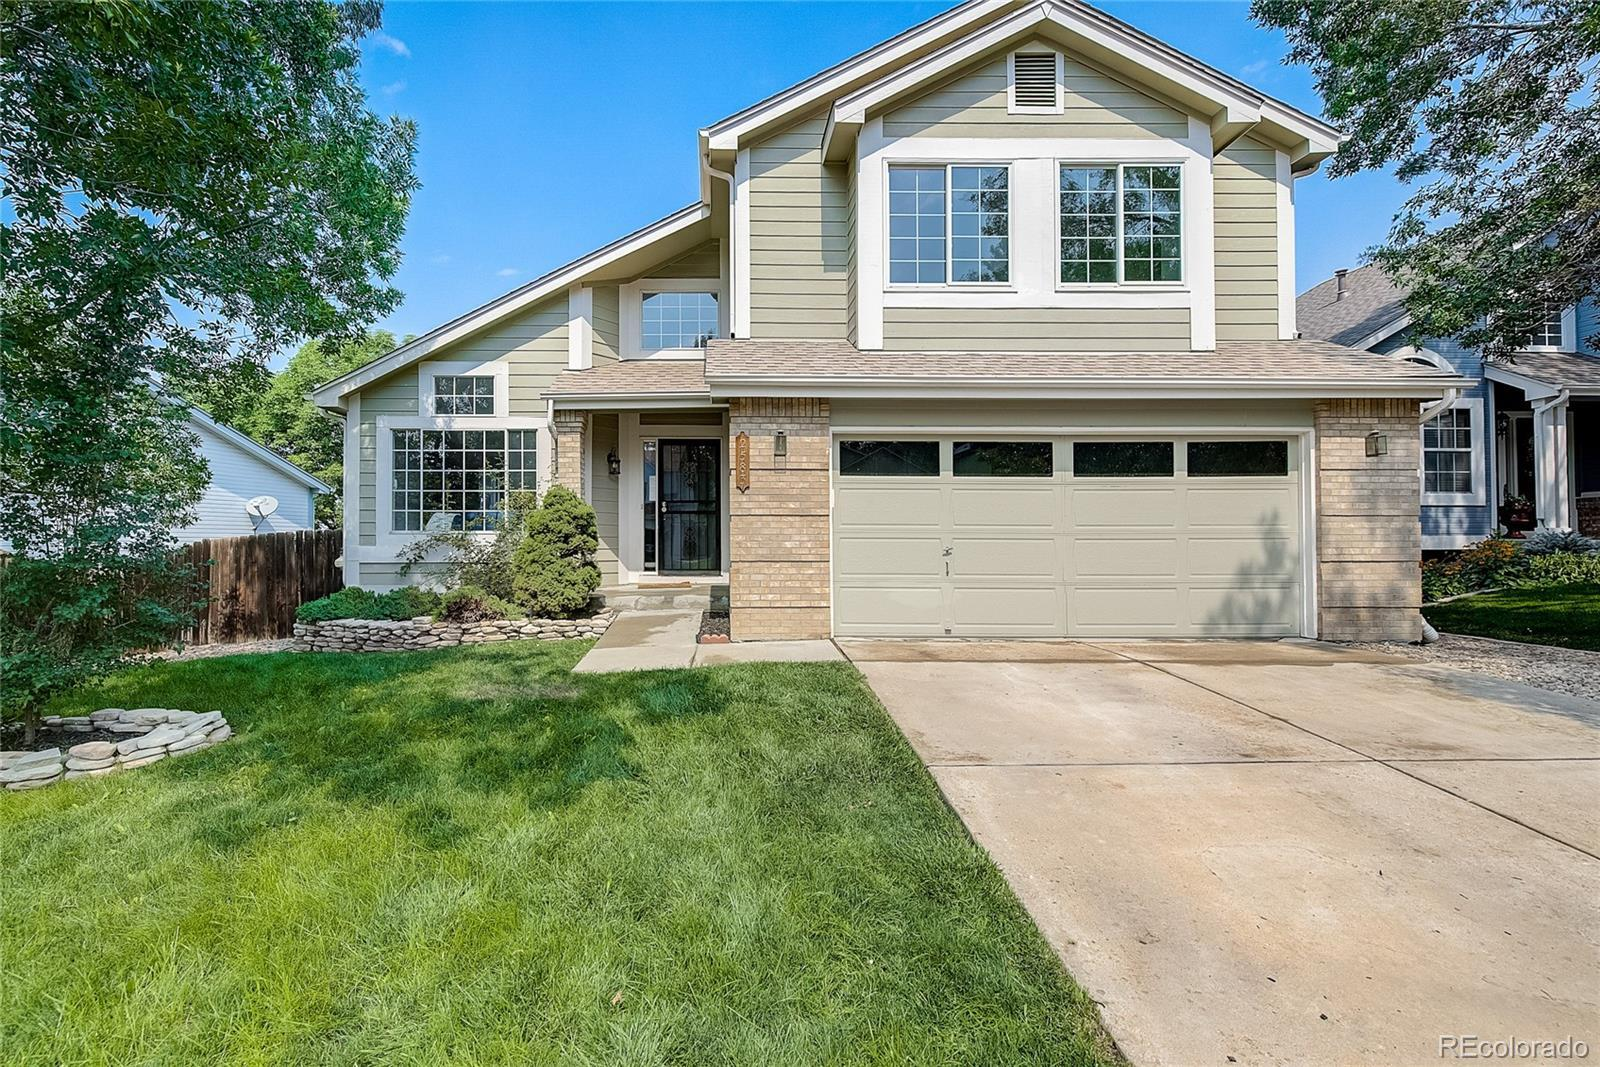 2583 W 110th Avenue, Westminster, CO 80234 - #: 5895549